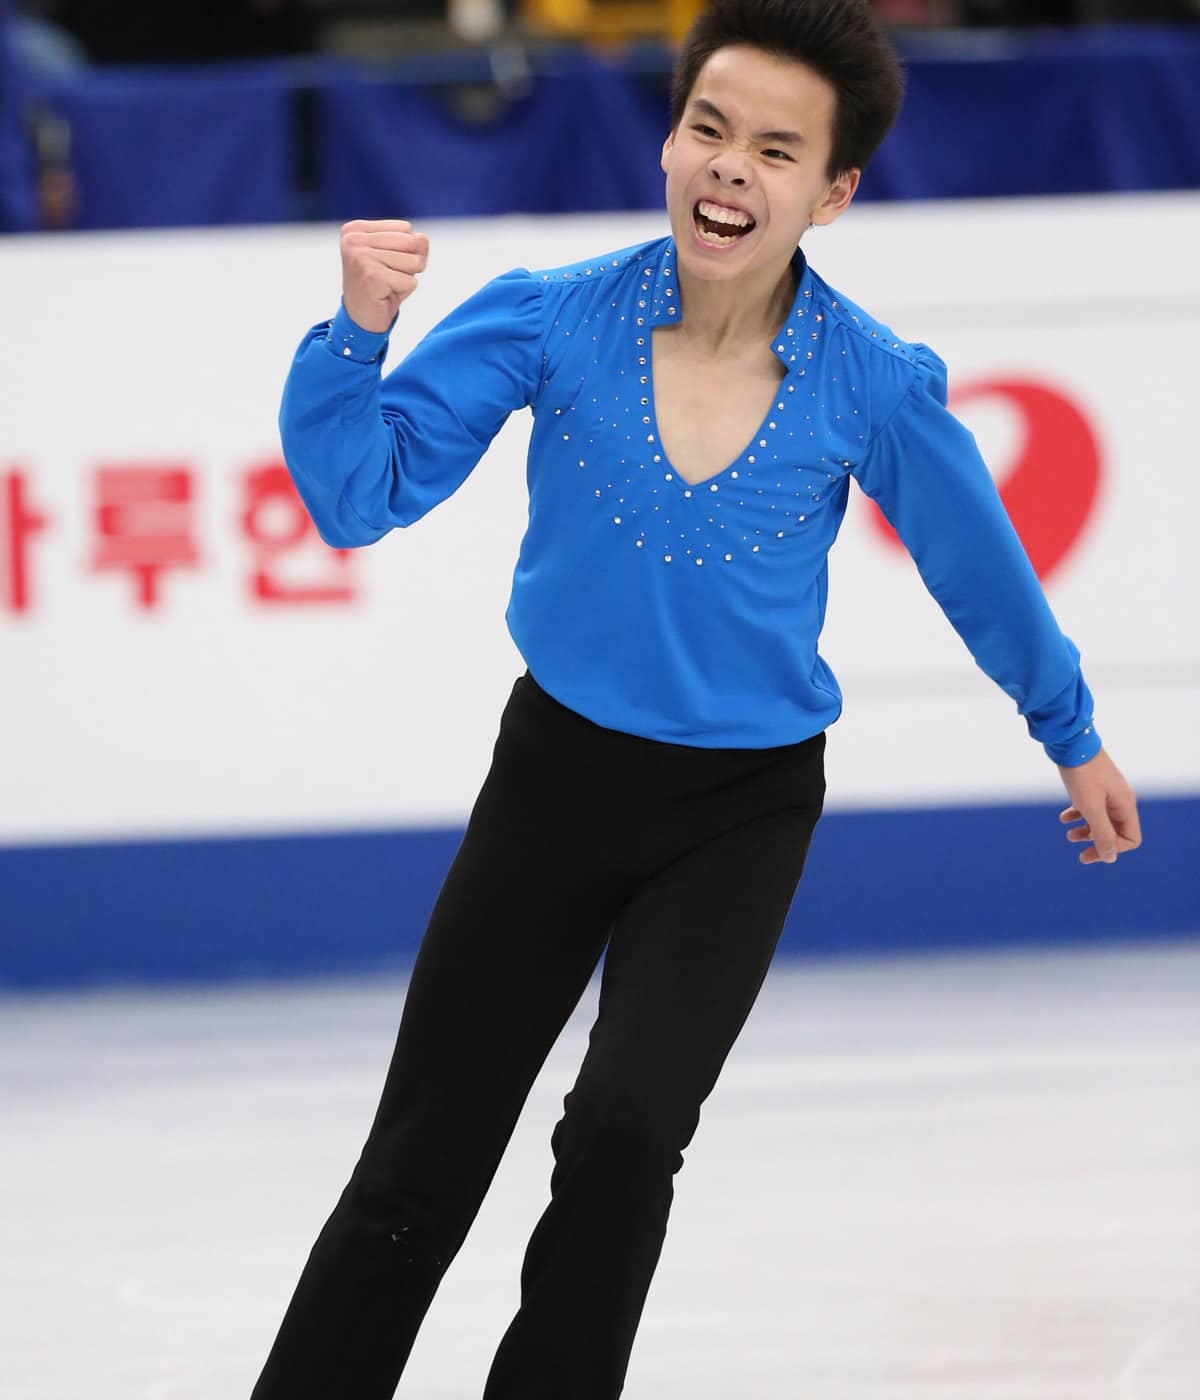 What jumps are there in figure skating Jump jump in figure skating. Rough jump in figure skating